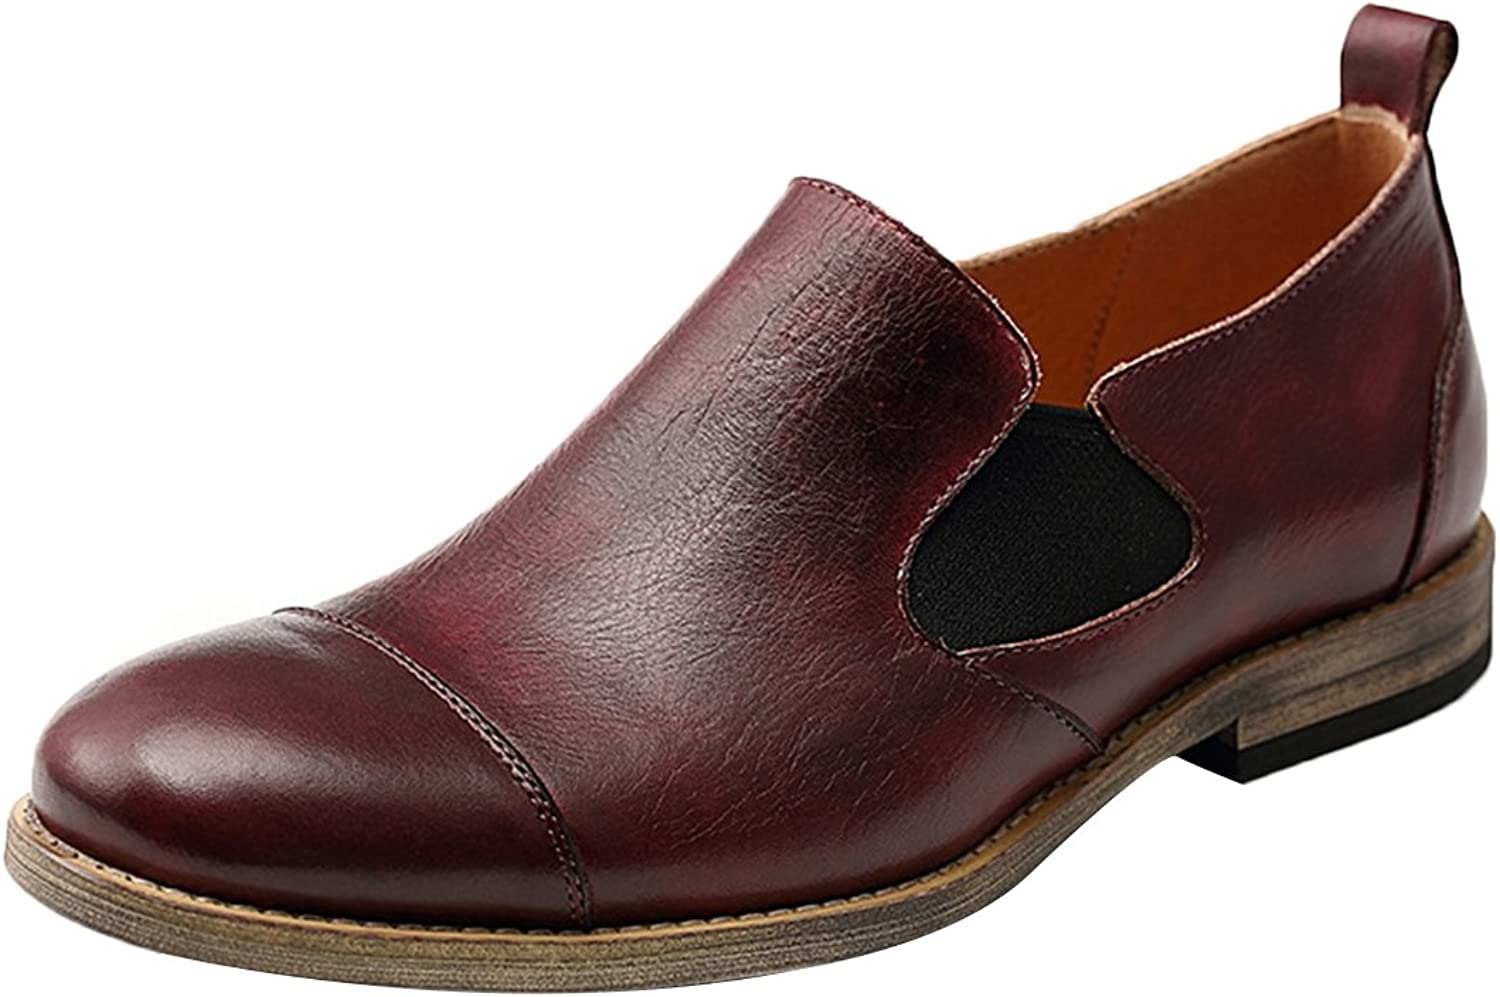 LIVEINU Men's Genuine Leather Casual Slip On Loafers shoes